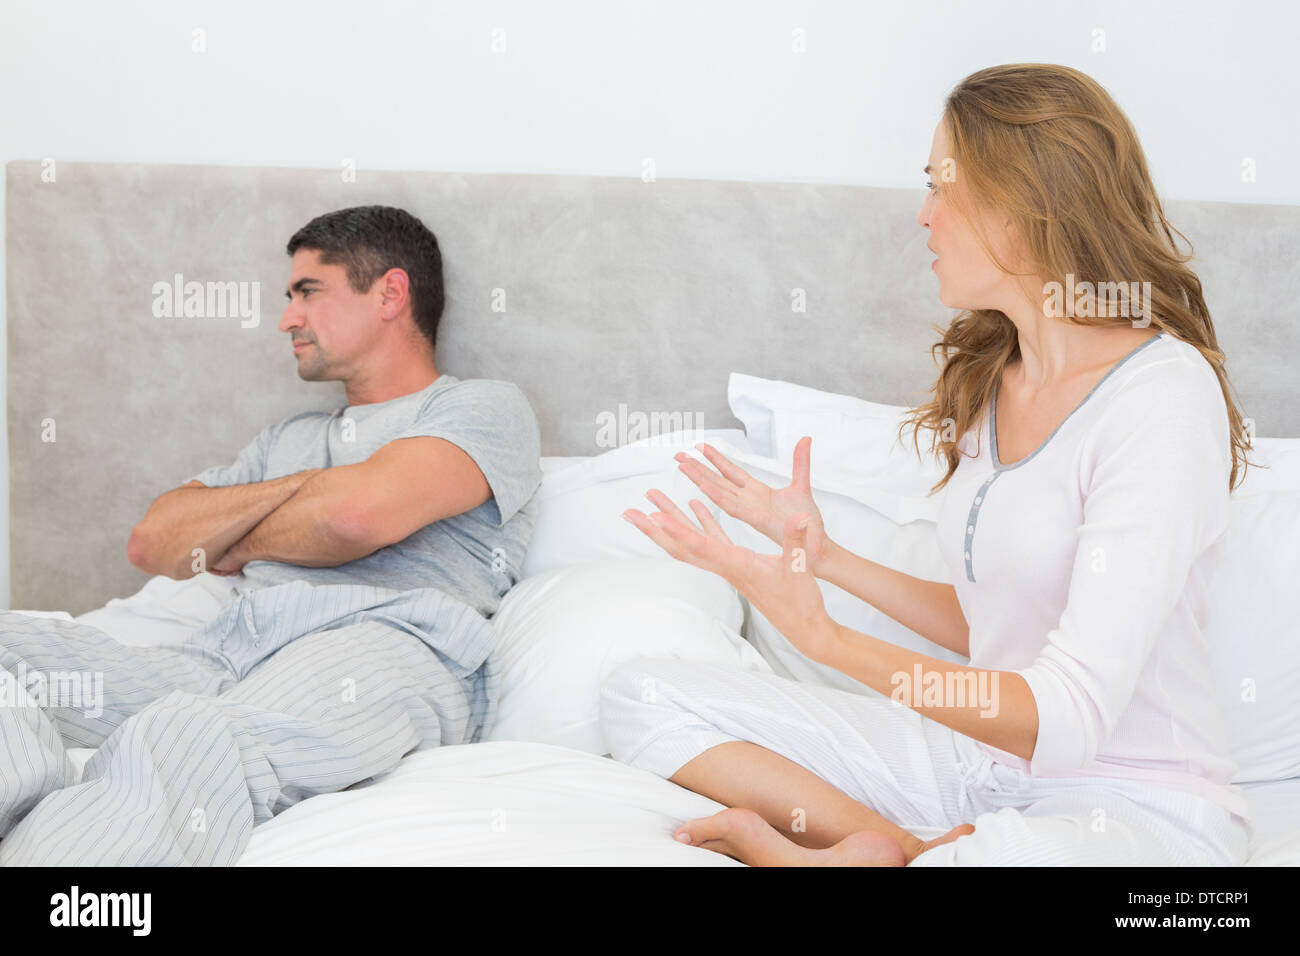 Couple arguing in bedroom - Stock Image